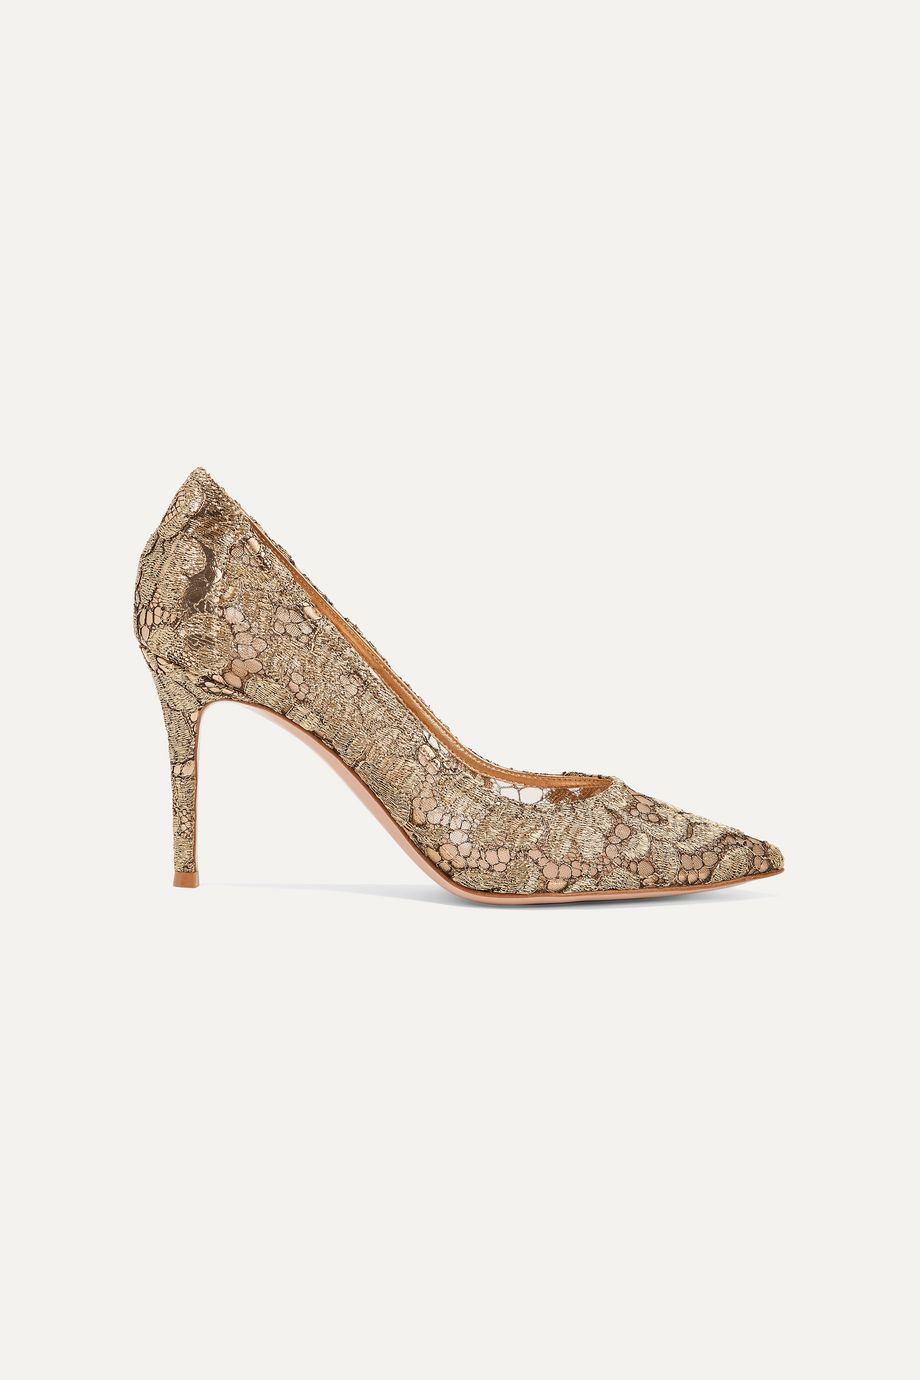 Gianvito Rossi 85 leather-trimmed metallic guipure lace and mesh pumps